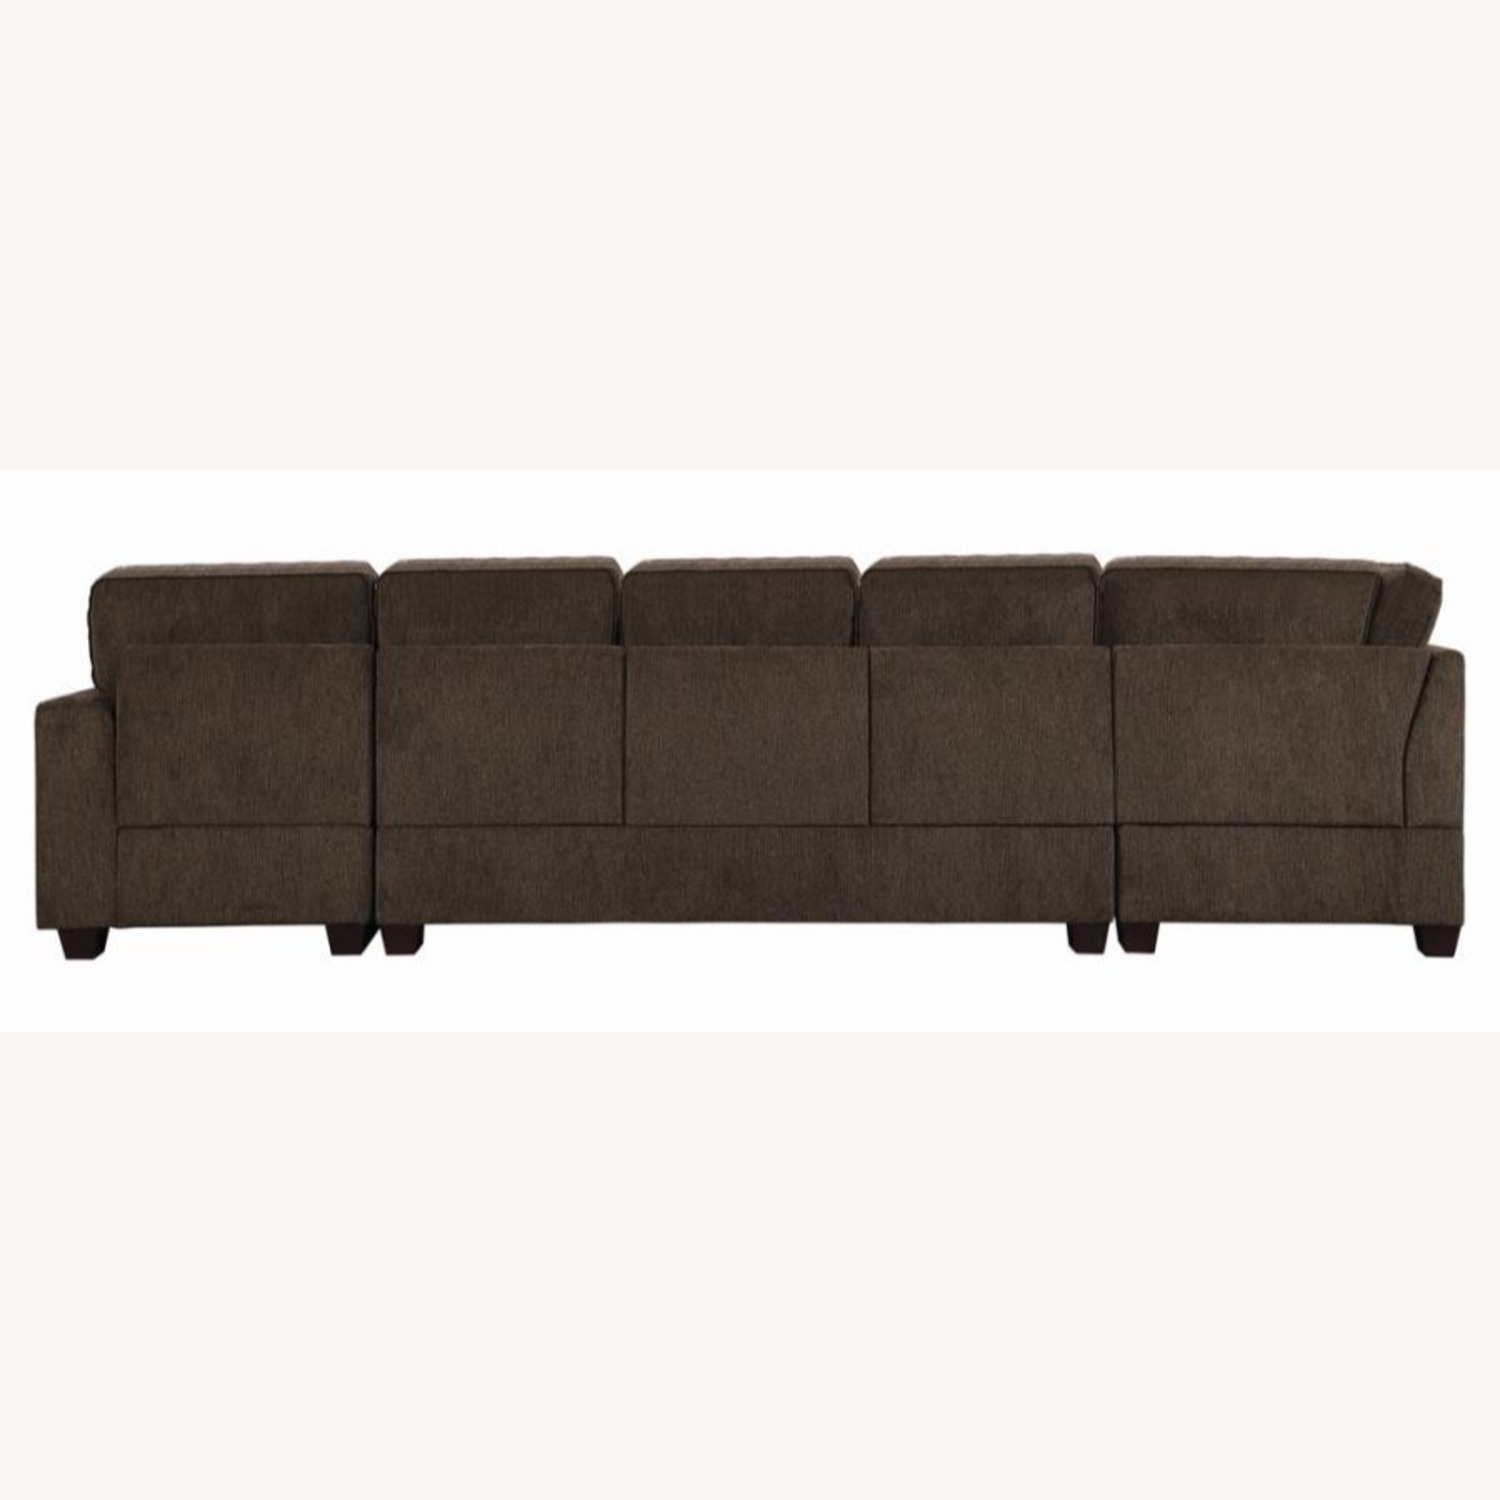 Sectional In Multi-Tonal Brown Chenille Upholstery - image-3